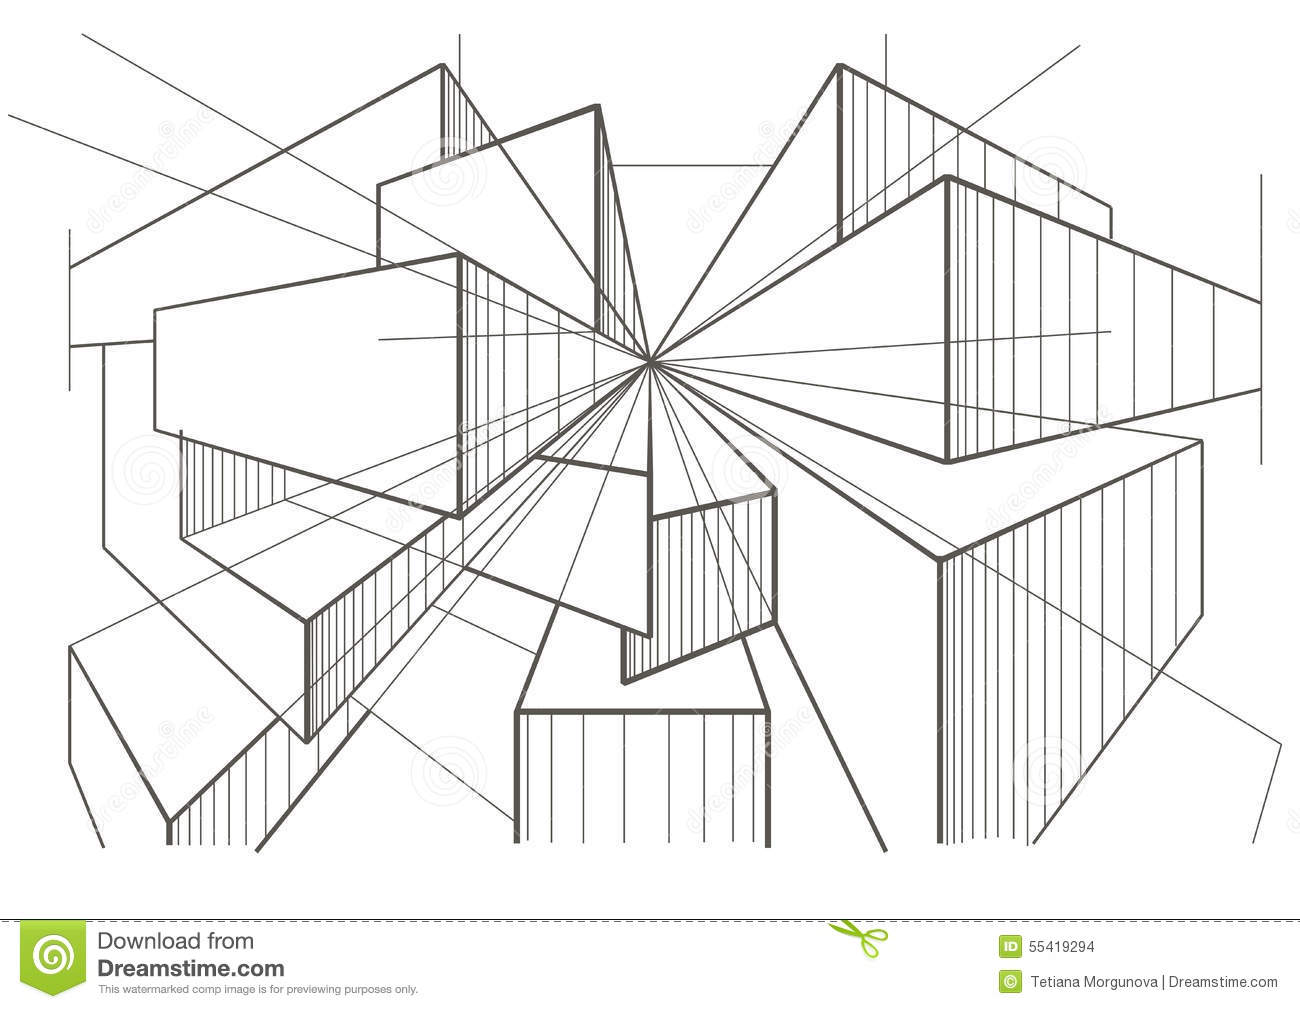 abstract architectural sketch of boxes in perspective. Black Bedroom Furniture Sets. Home Design Ideas